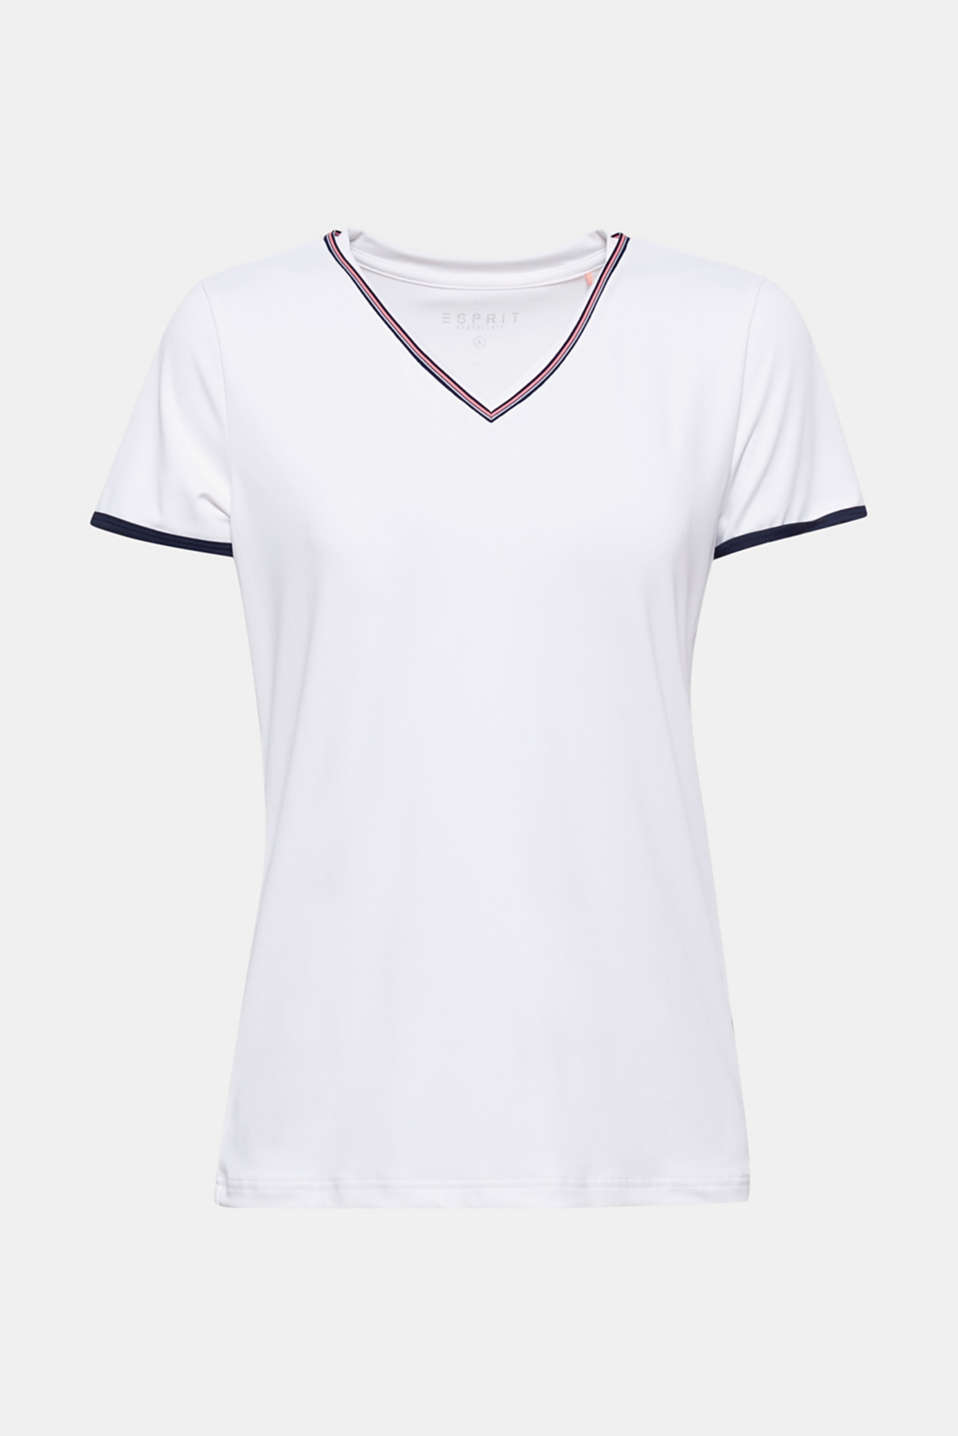 This slightly fitted active top looks not only simple, but also trendy and sporty with its embellished V-neckline and contrasting trims on the sleeves.